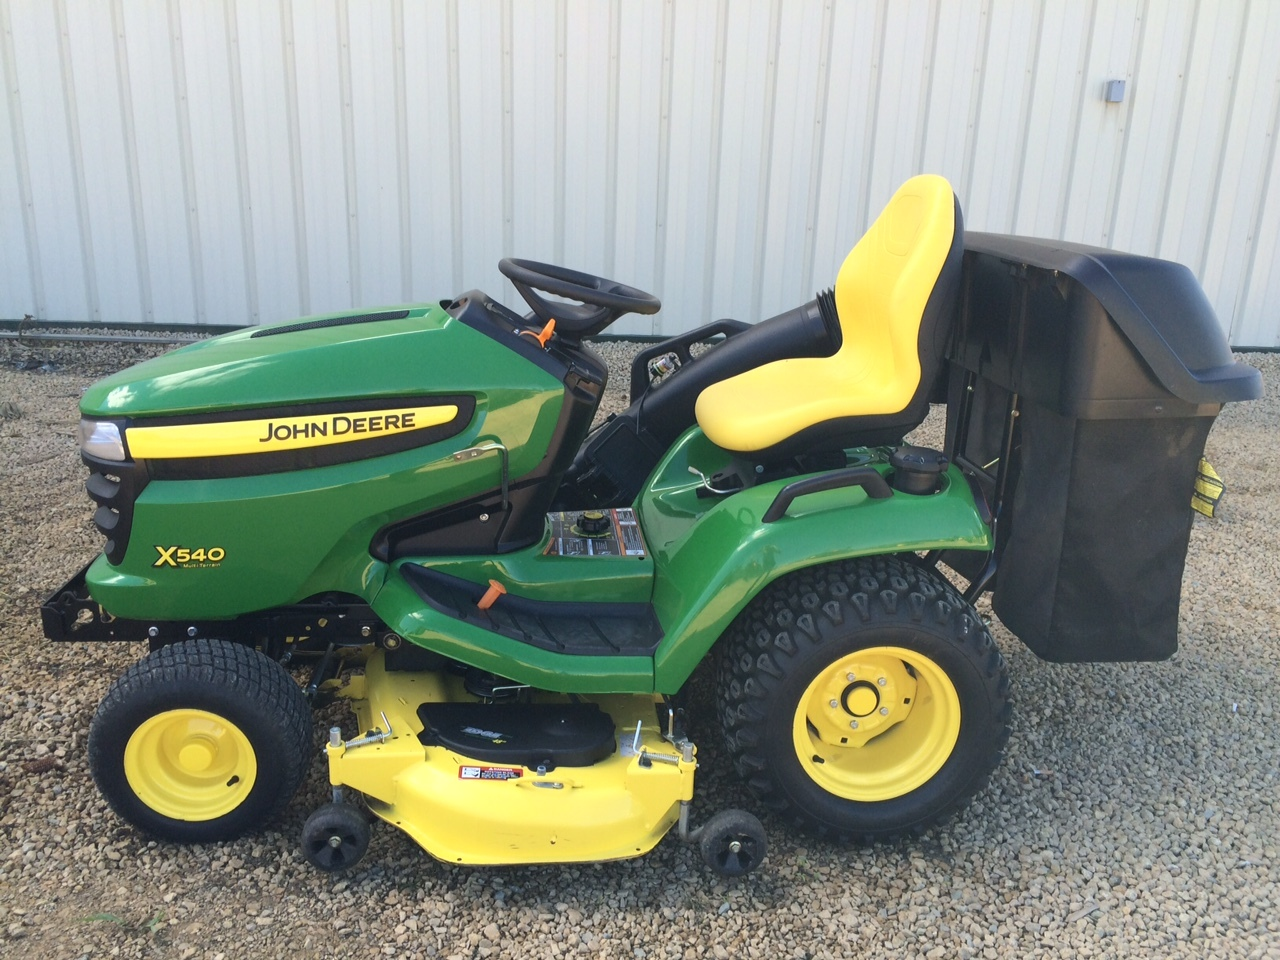 John deere x540 lawn garden tractors for sale 50023 for Lawn and garden implements